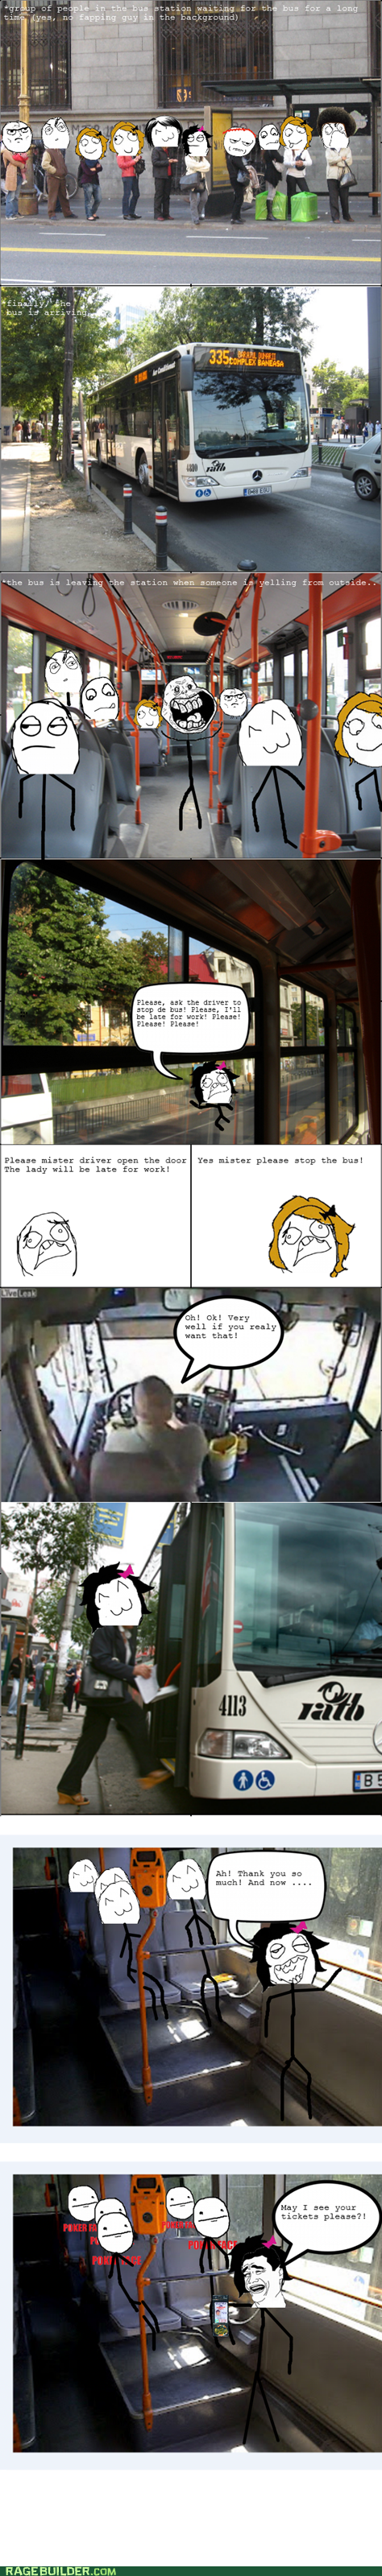 bus rage taking the bus metro bus bus - 6894080256